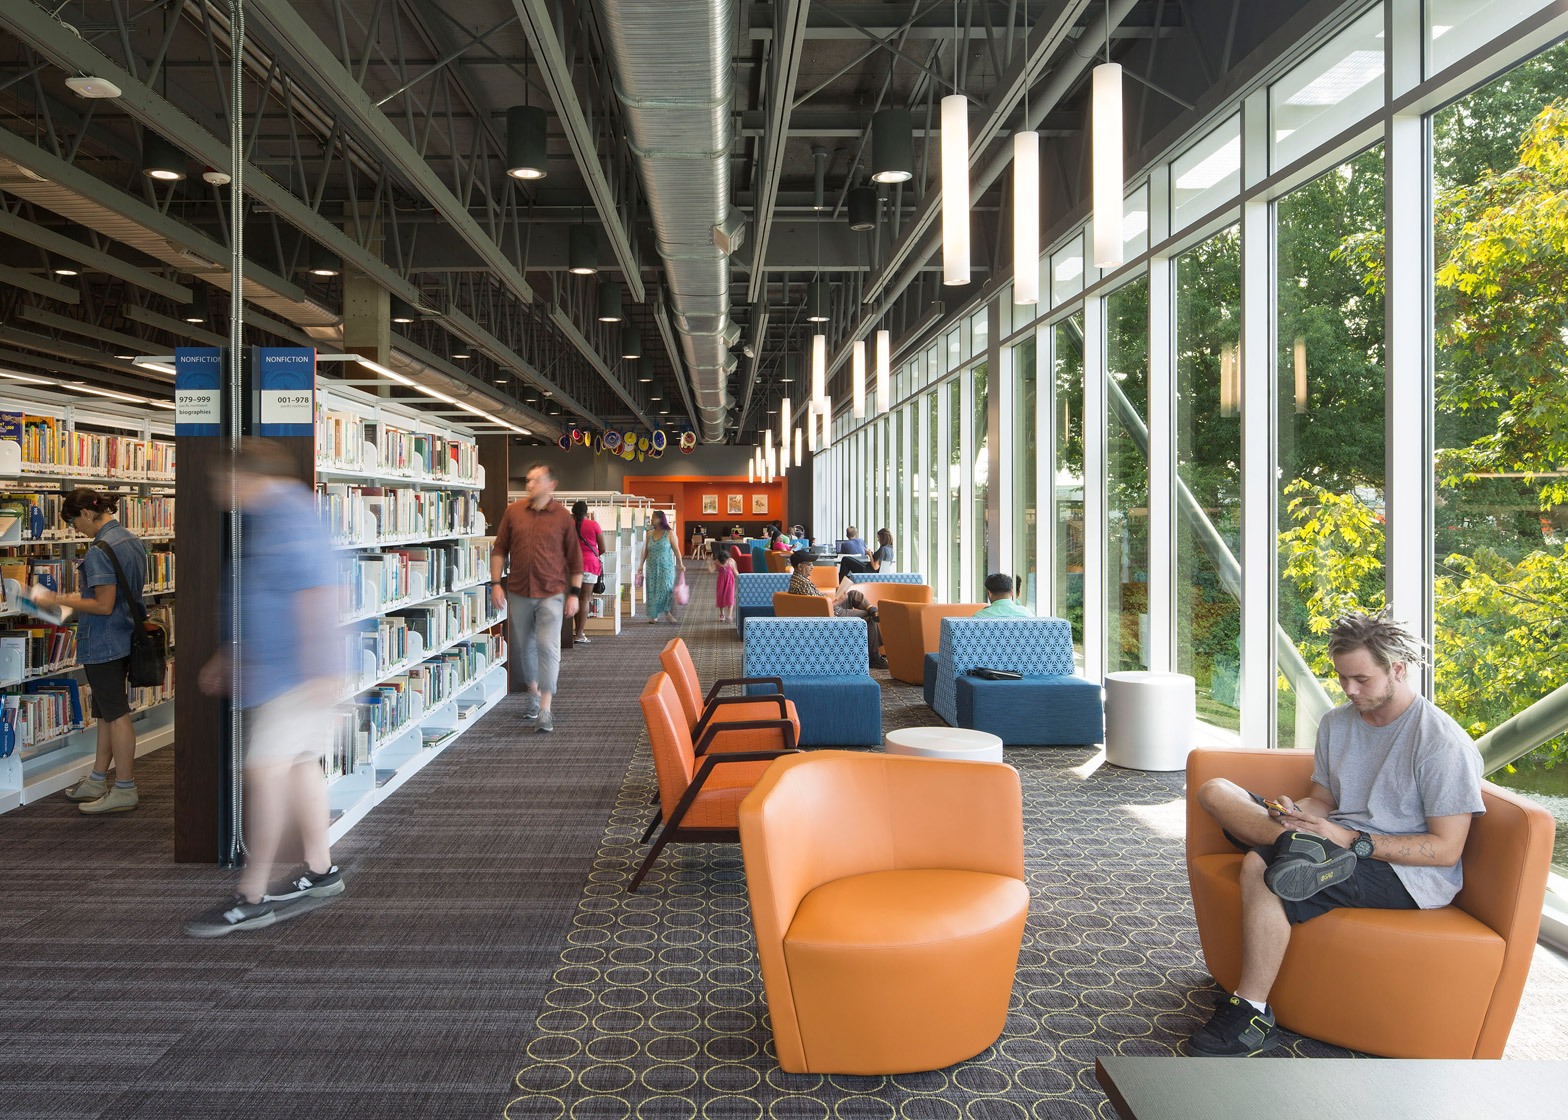 Renton Public Library; Renton, Washington, by The Miller Hull Partnership winner of the 2016 AIA library awards